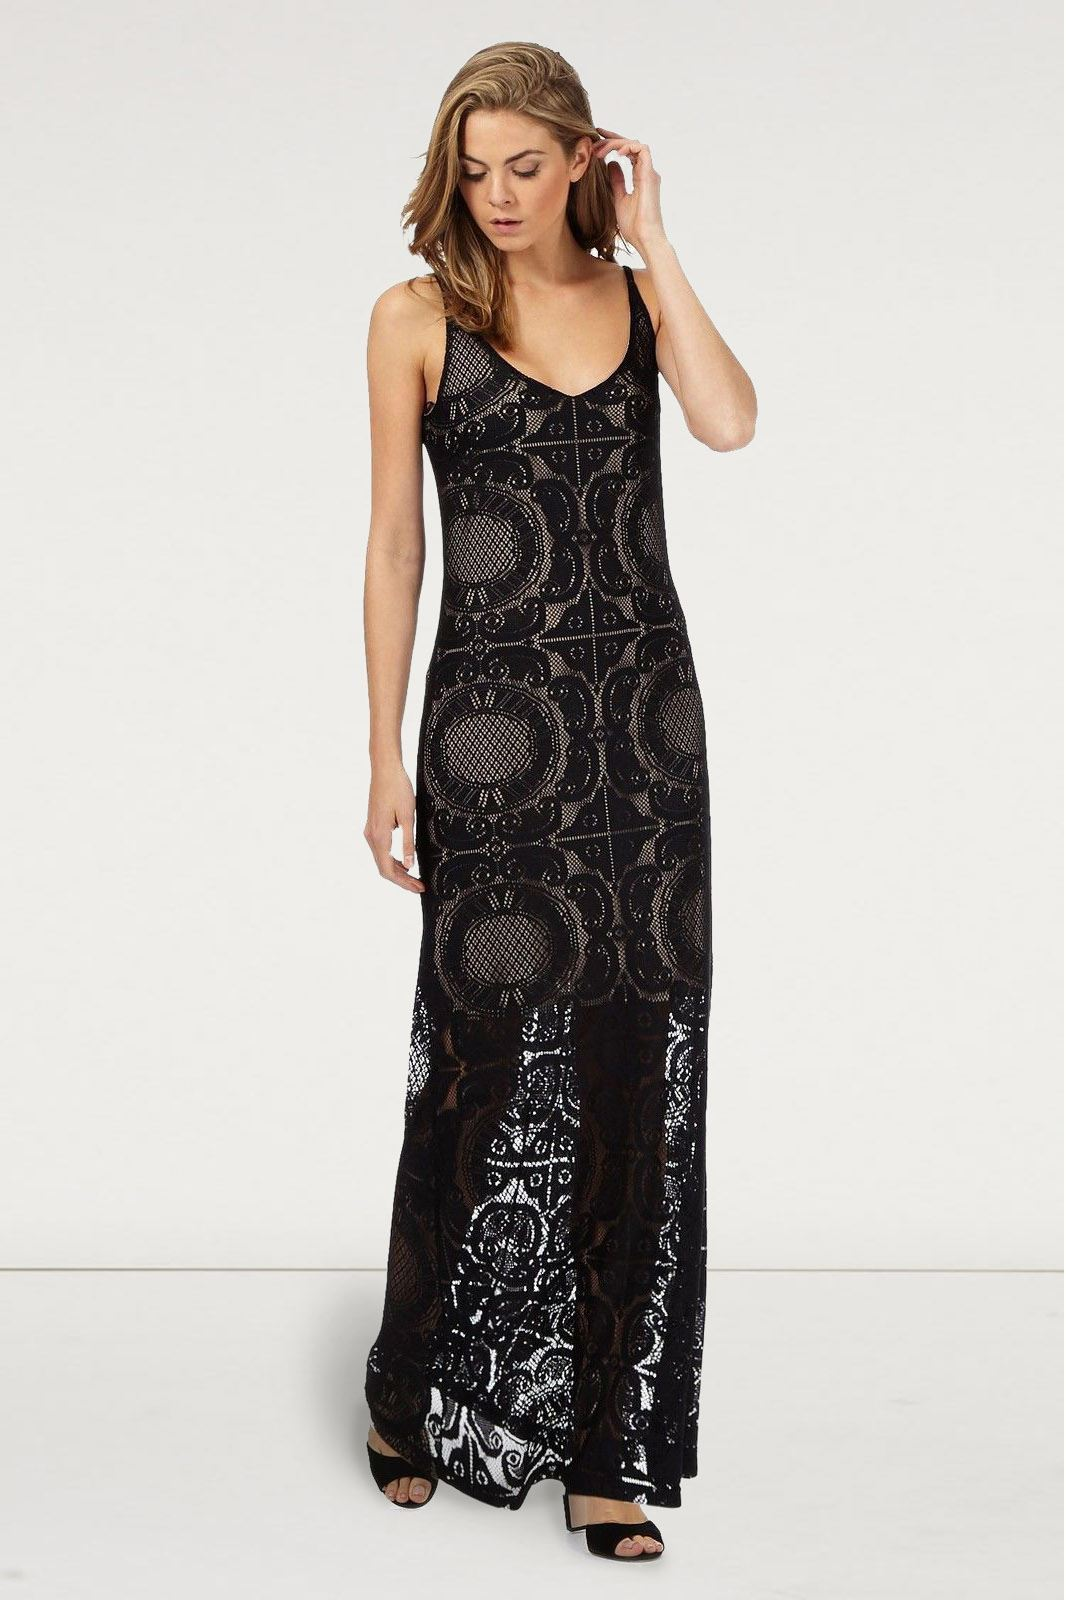 JULIEN-MACDONALD-Black-Lace-Maxi-Party-Dress-Long-Sleevless-RRP-69